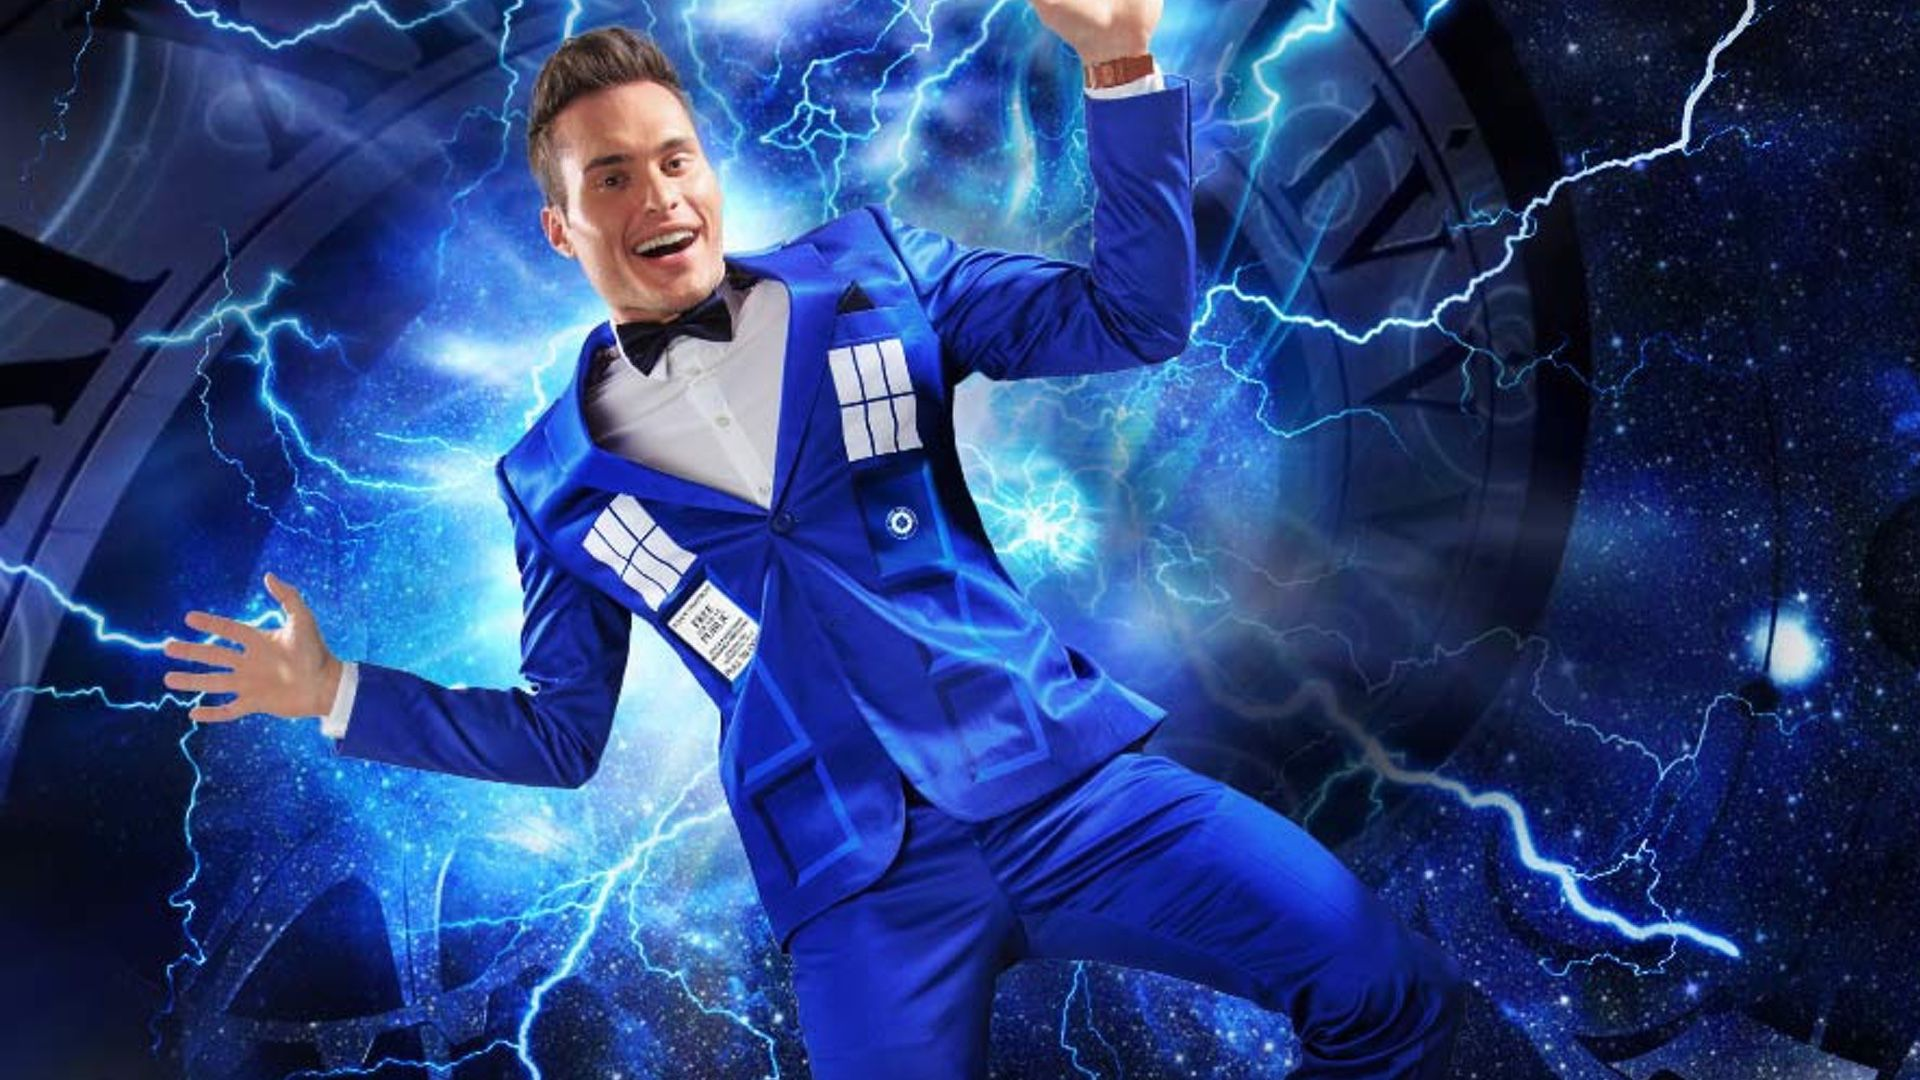 Check Out This Cool Line of Official DOCTOR WHO Business Suits